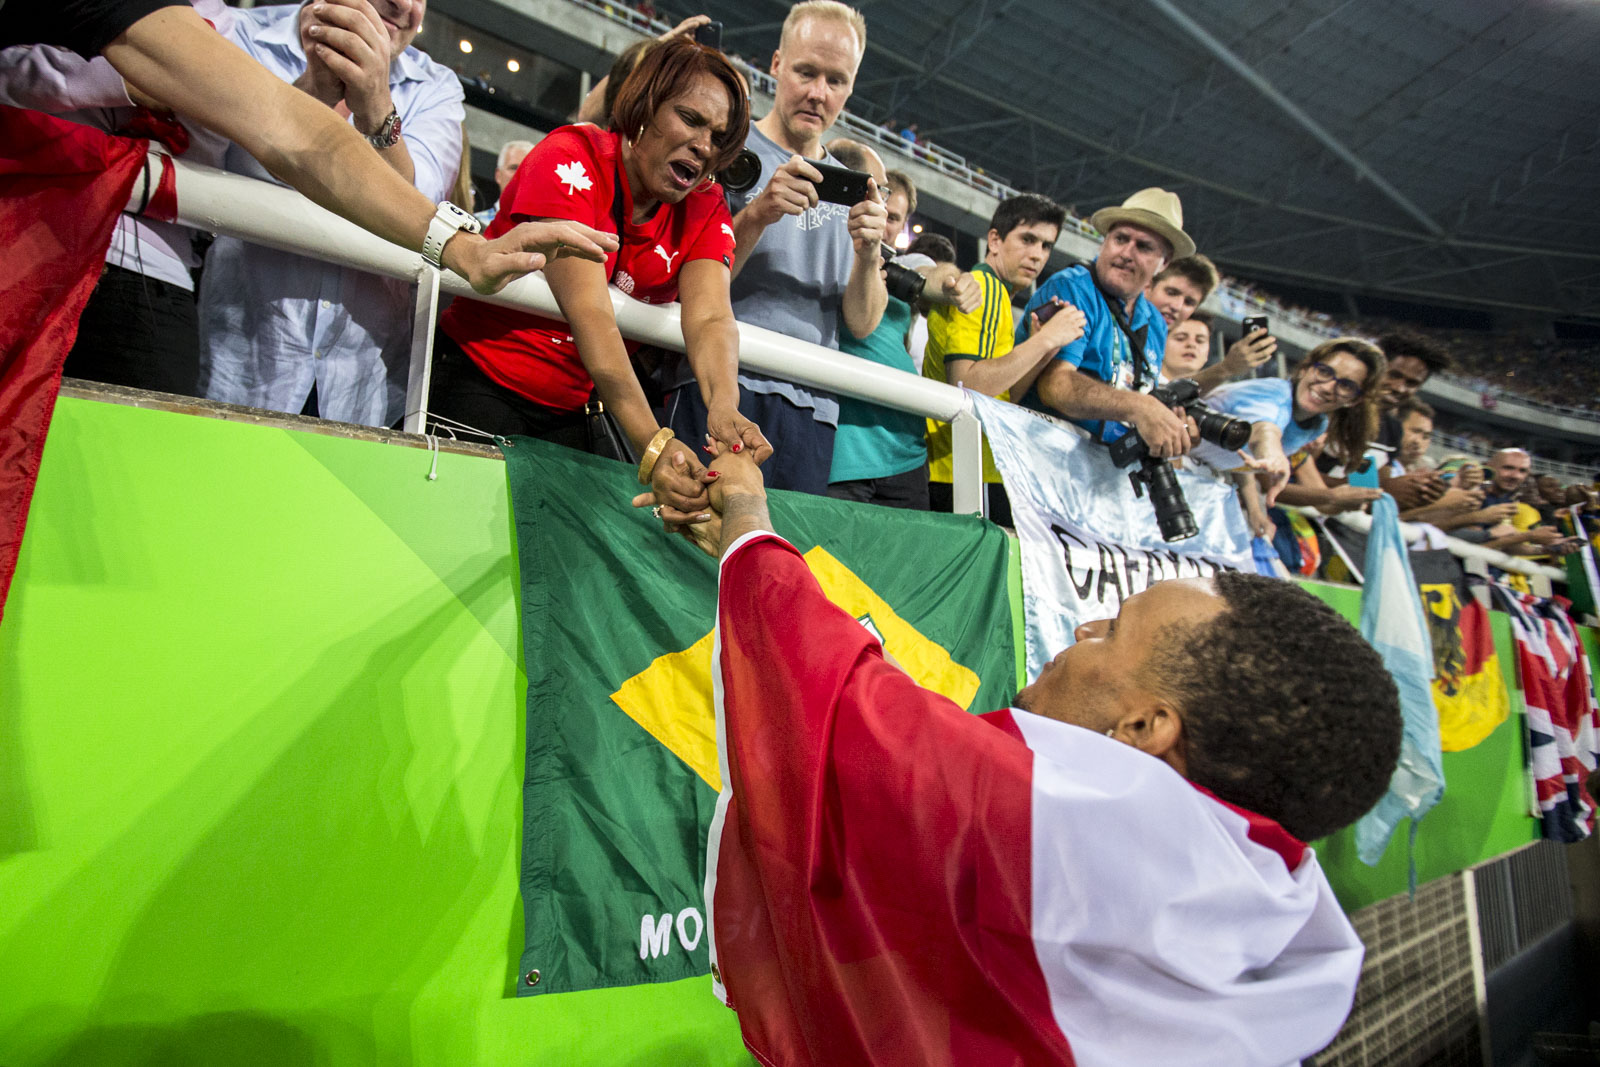 Andre DeGrasse finds his mother after winning olympic bronze in the mens 100m sprint, Rio de Janeiro, Brazil, Sunday August 14, 2016.    COC Photo/David Jackson